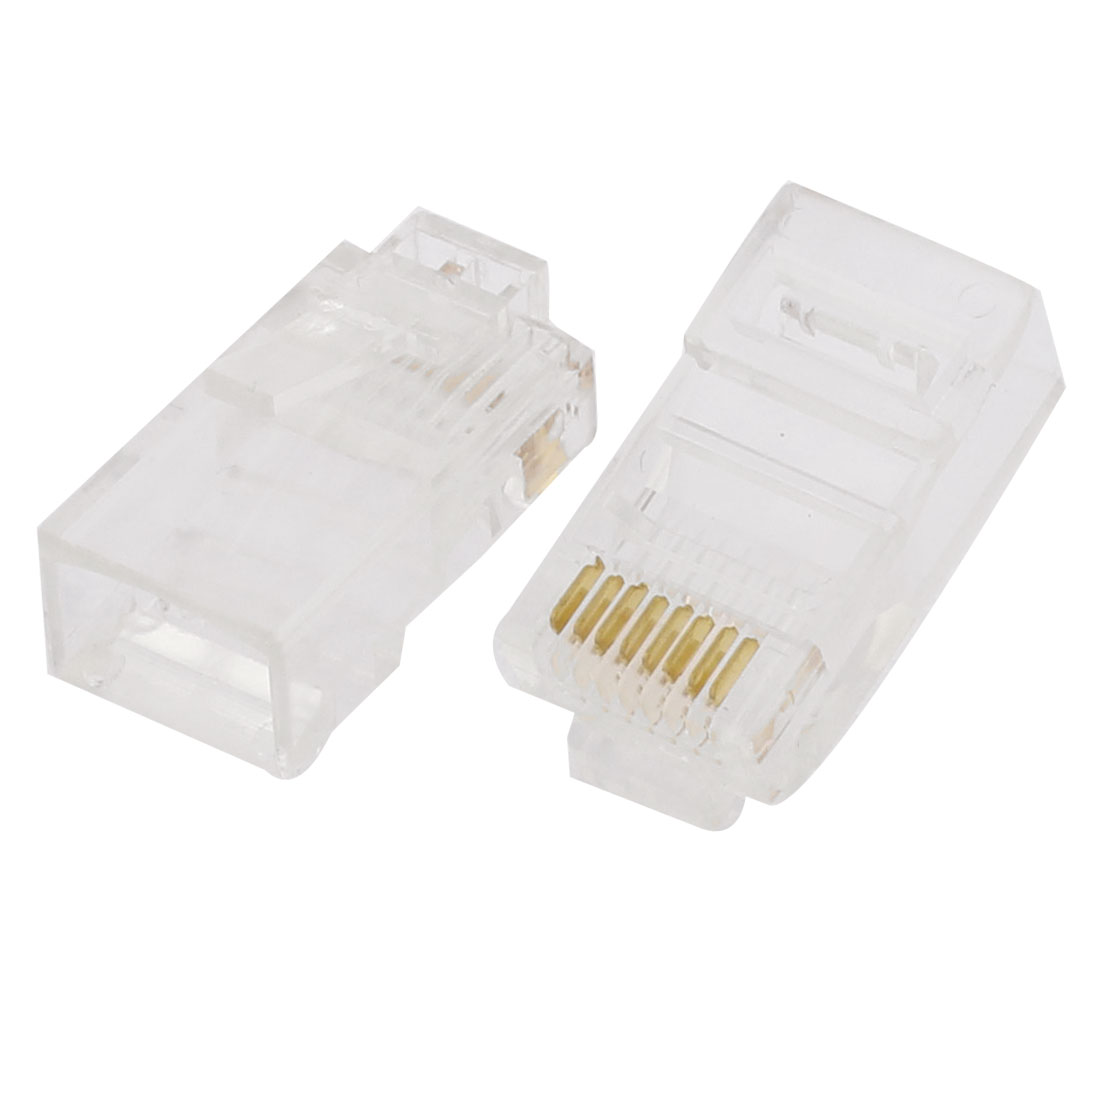 2pcs Network Cable Plastic 8P8C RJ45 Connector Modular End Plug